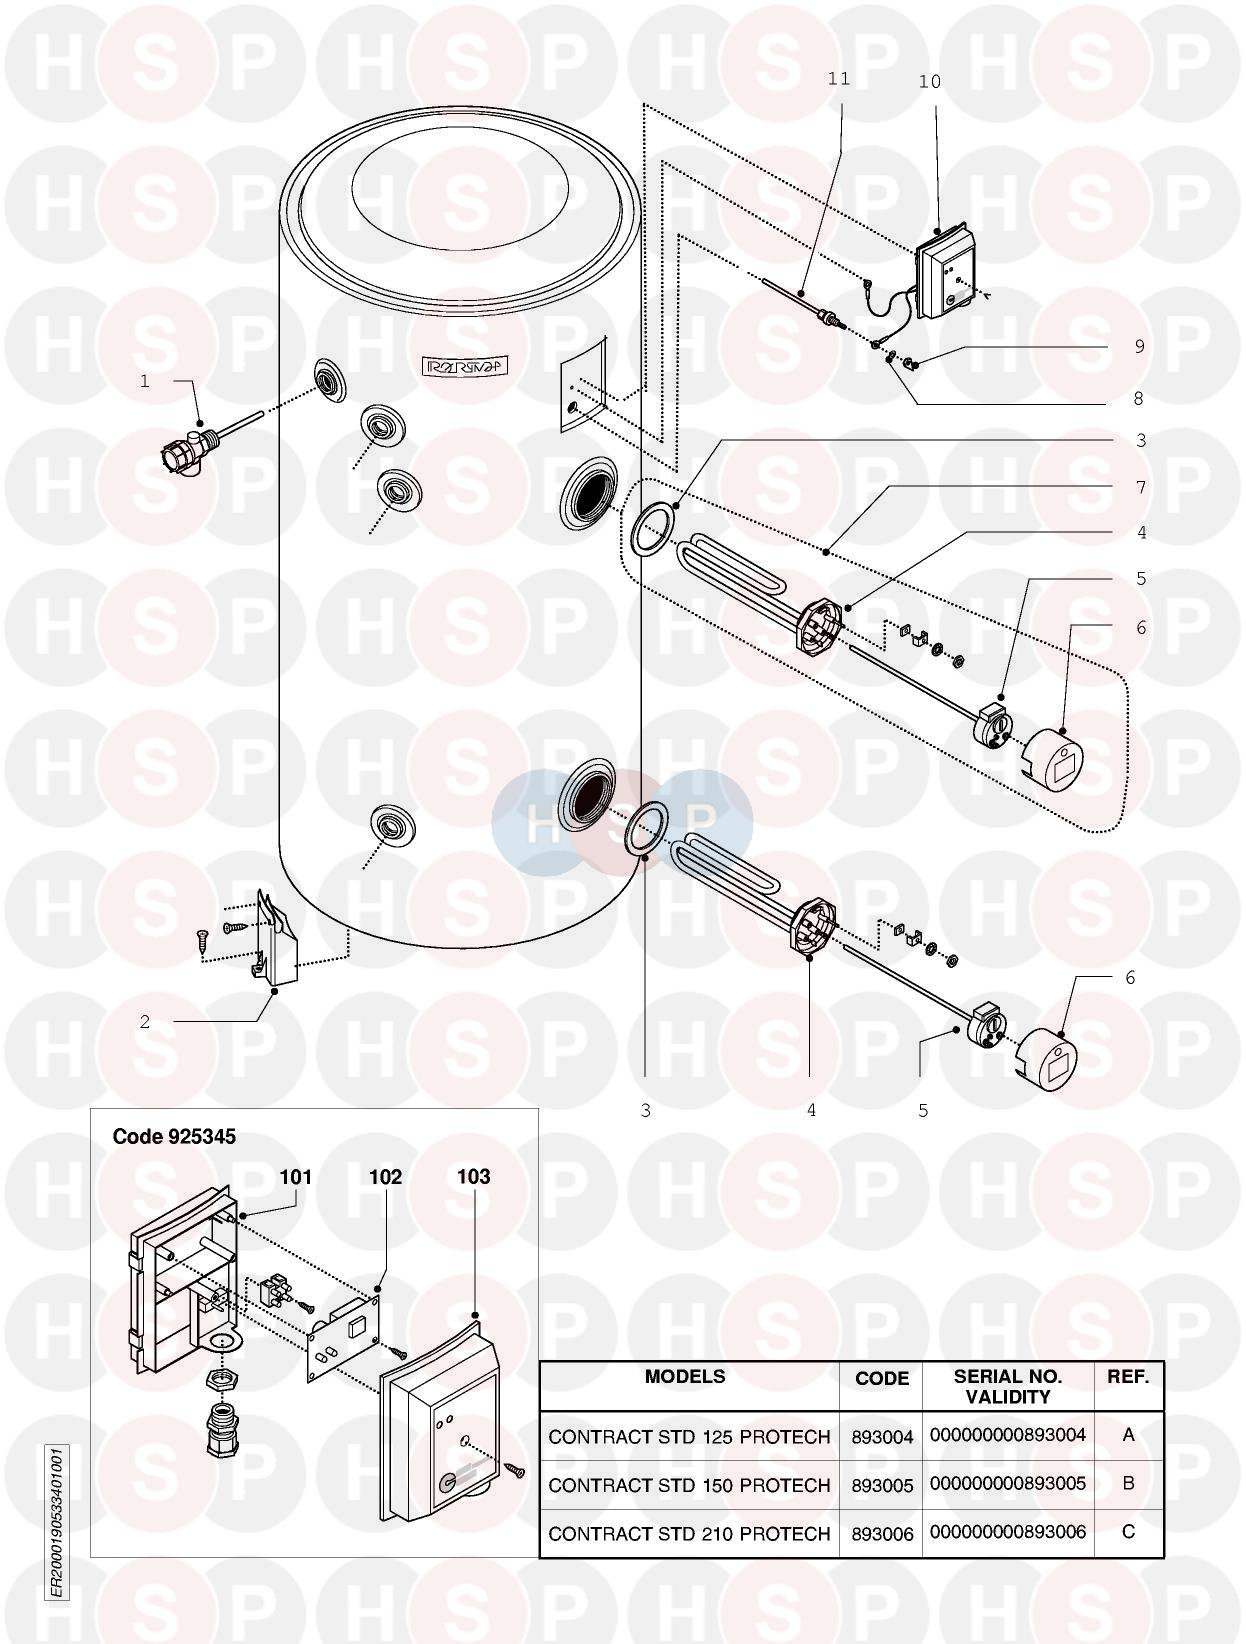 Ariston CONTRACT STD 210 PROTECH Appliance Diagram